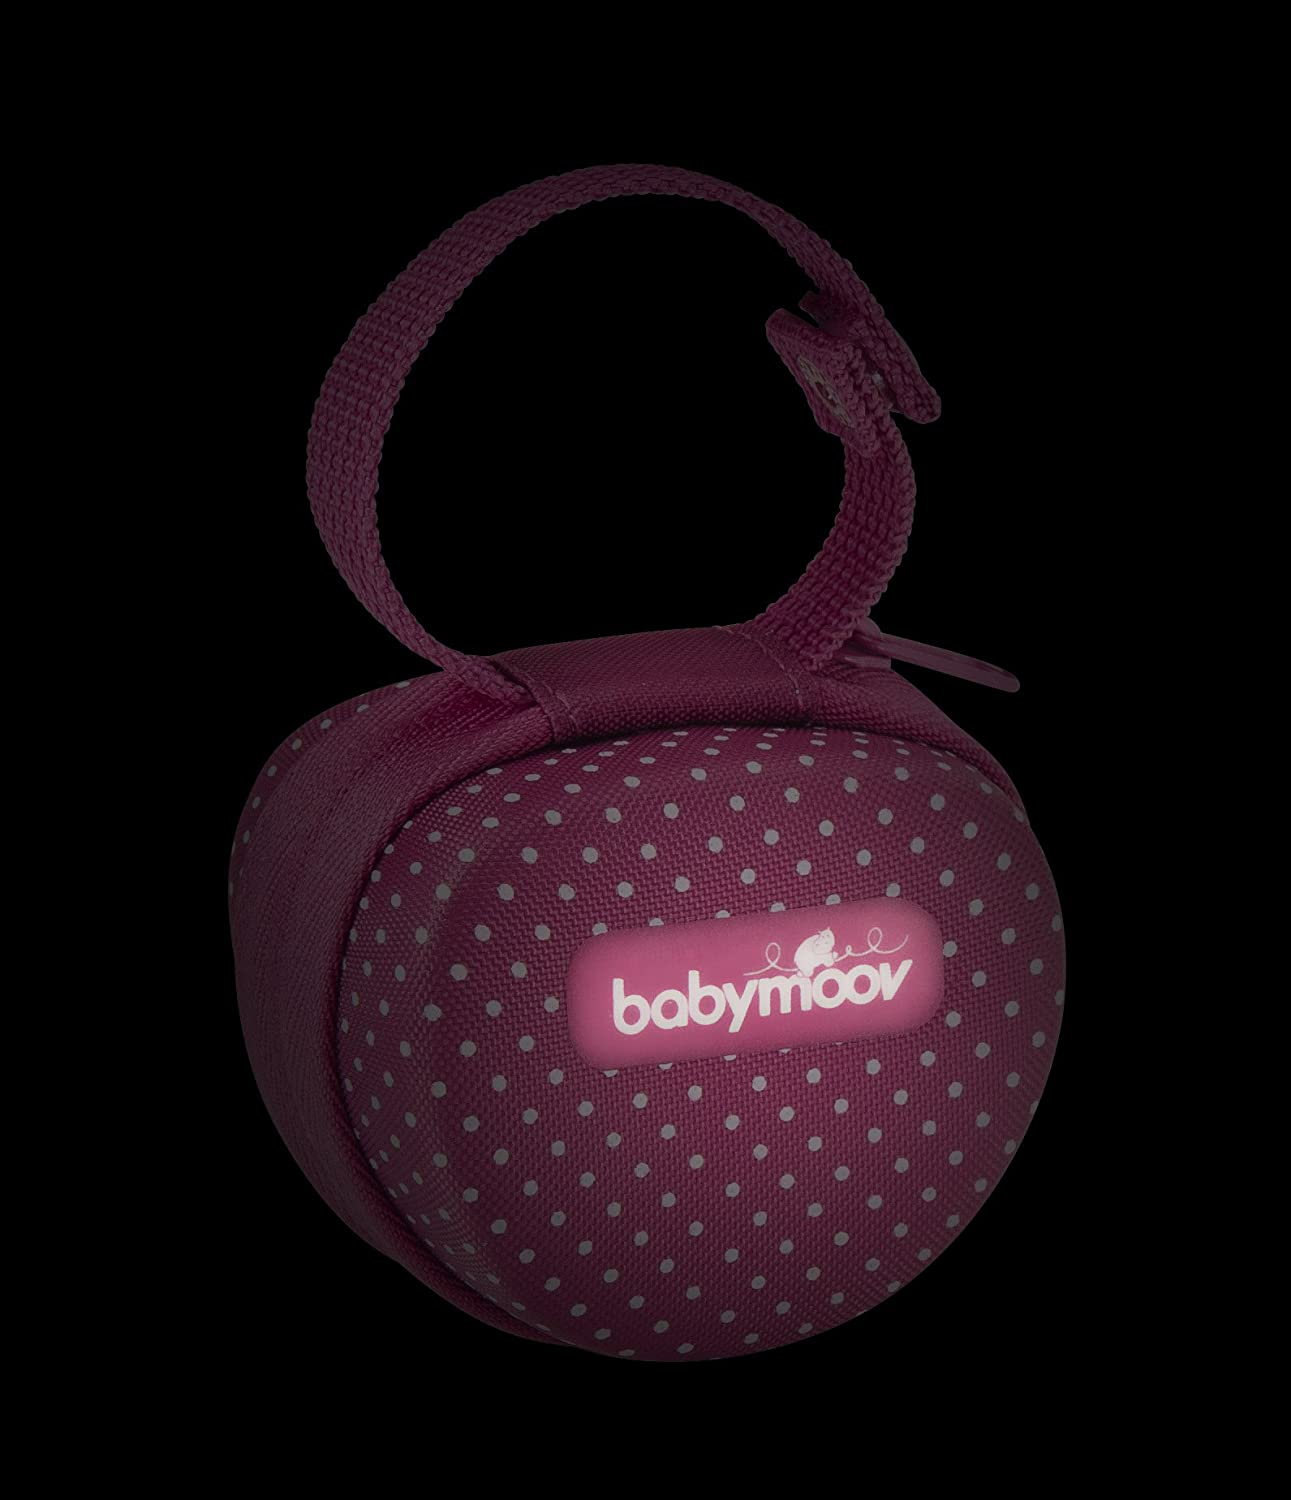 Babymoov Lovely A011201 - Portachupetes, para 0 m+, color rosa